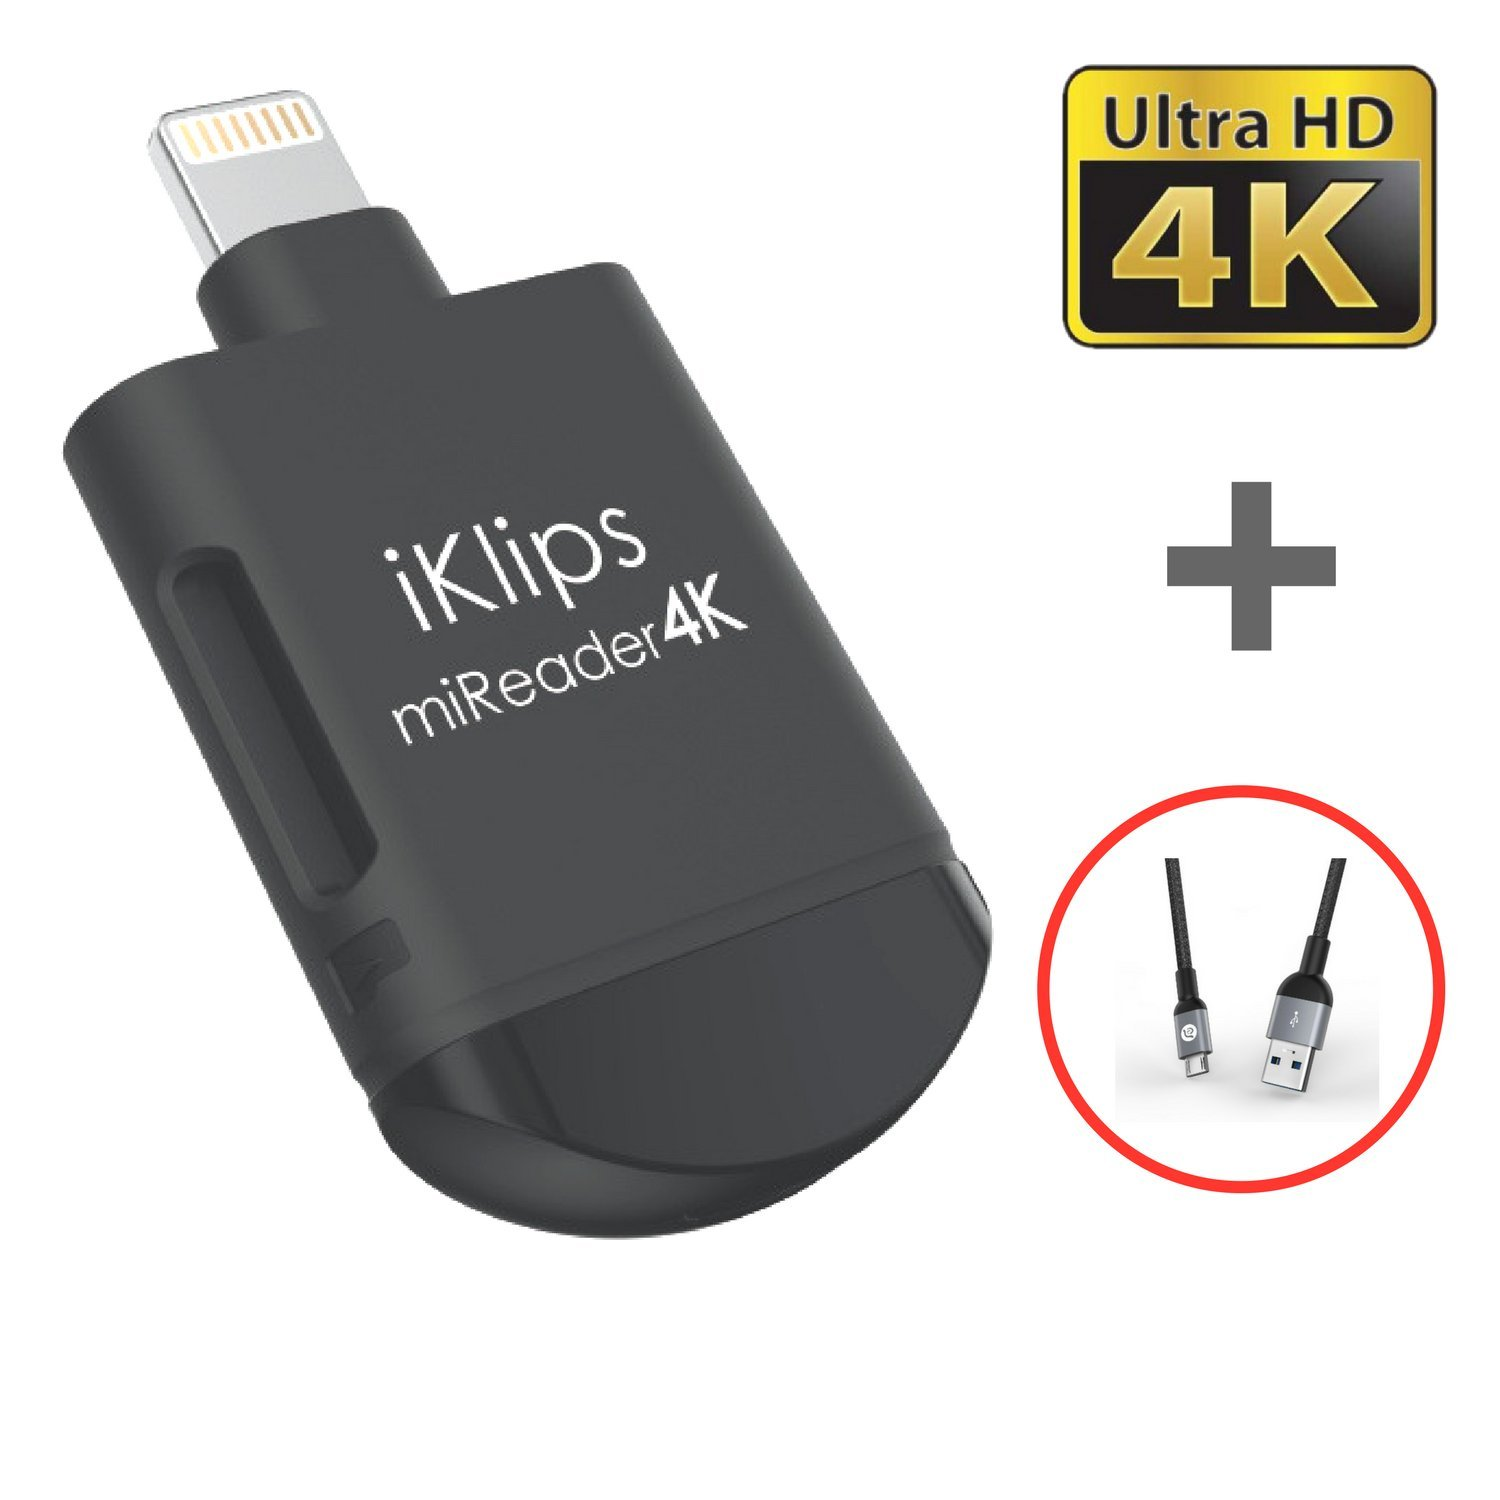 A ADAM ELEMENTS iKlips miReader MicroSD 4K Card Reader Compatible for iPhone iPad External Memory Storage Charger - Store, View, Edit, Record 4K Video ...